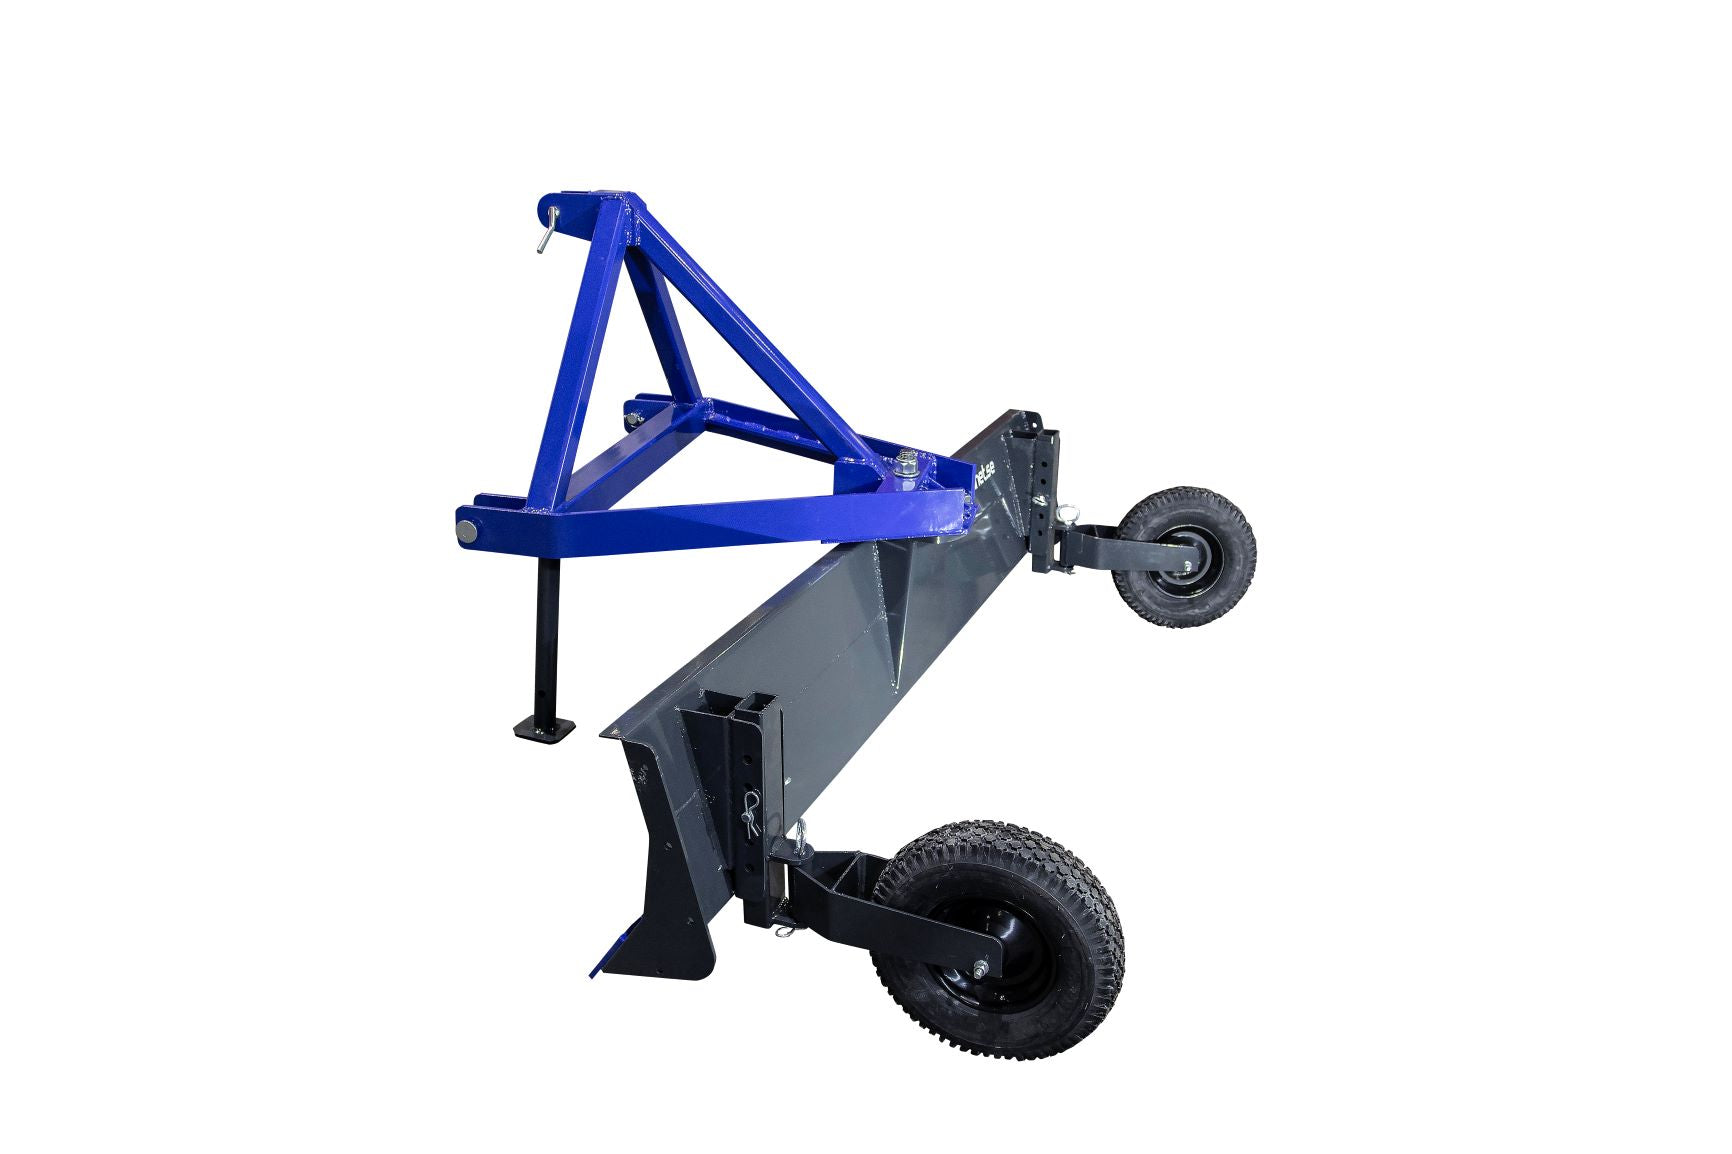 Bonnet plow for small tractors 2.2m